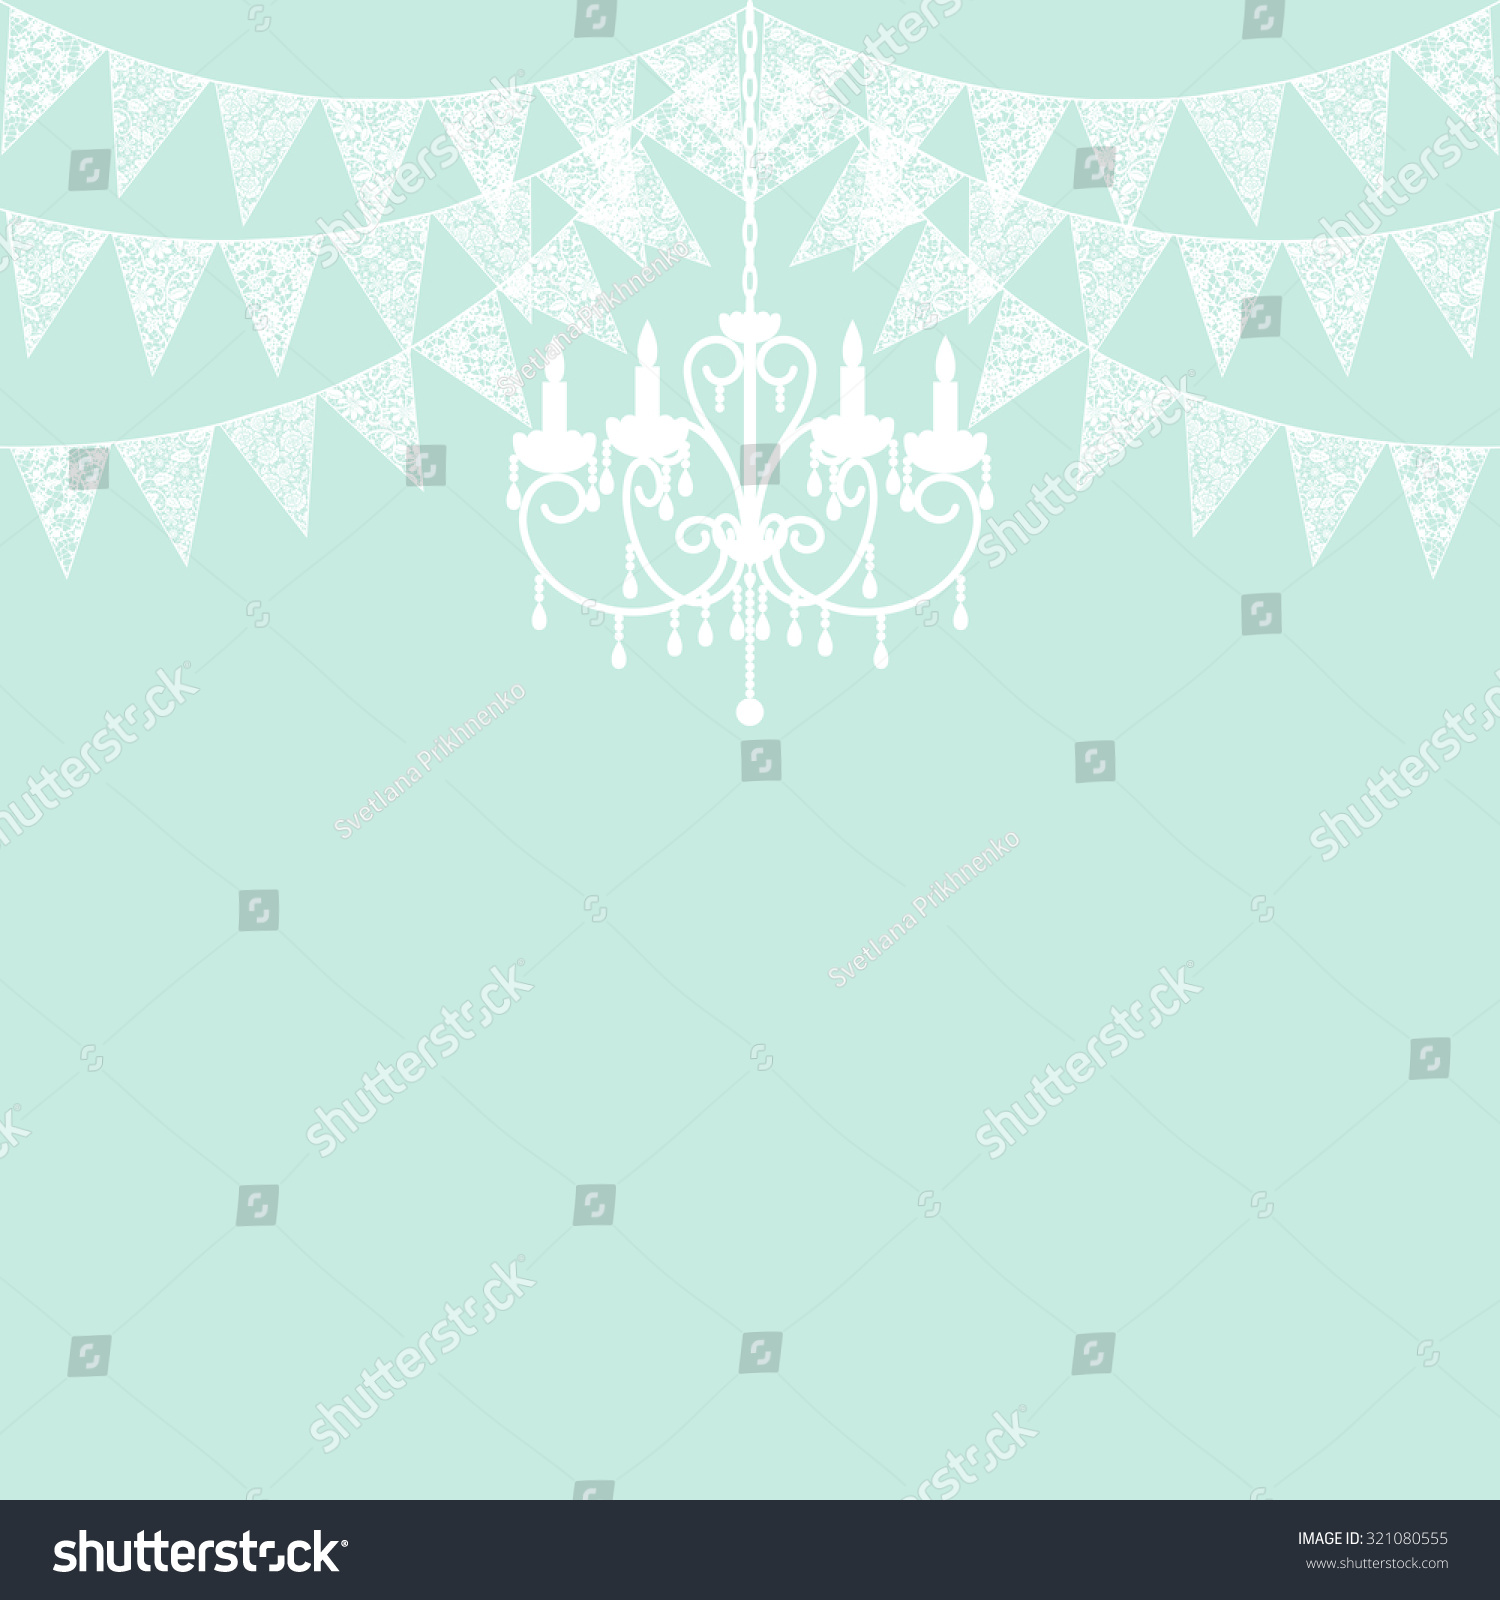 Wedding invitation card template white lace stock vector 321080555 wedding invitation card template with white lace bunting and chandelier on green background arubaitofo Image collections